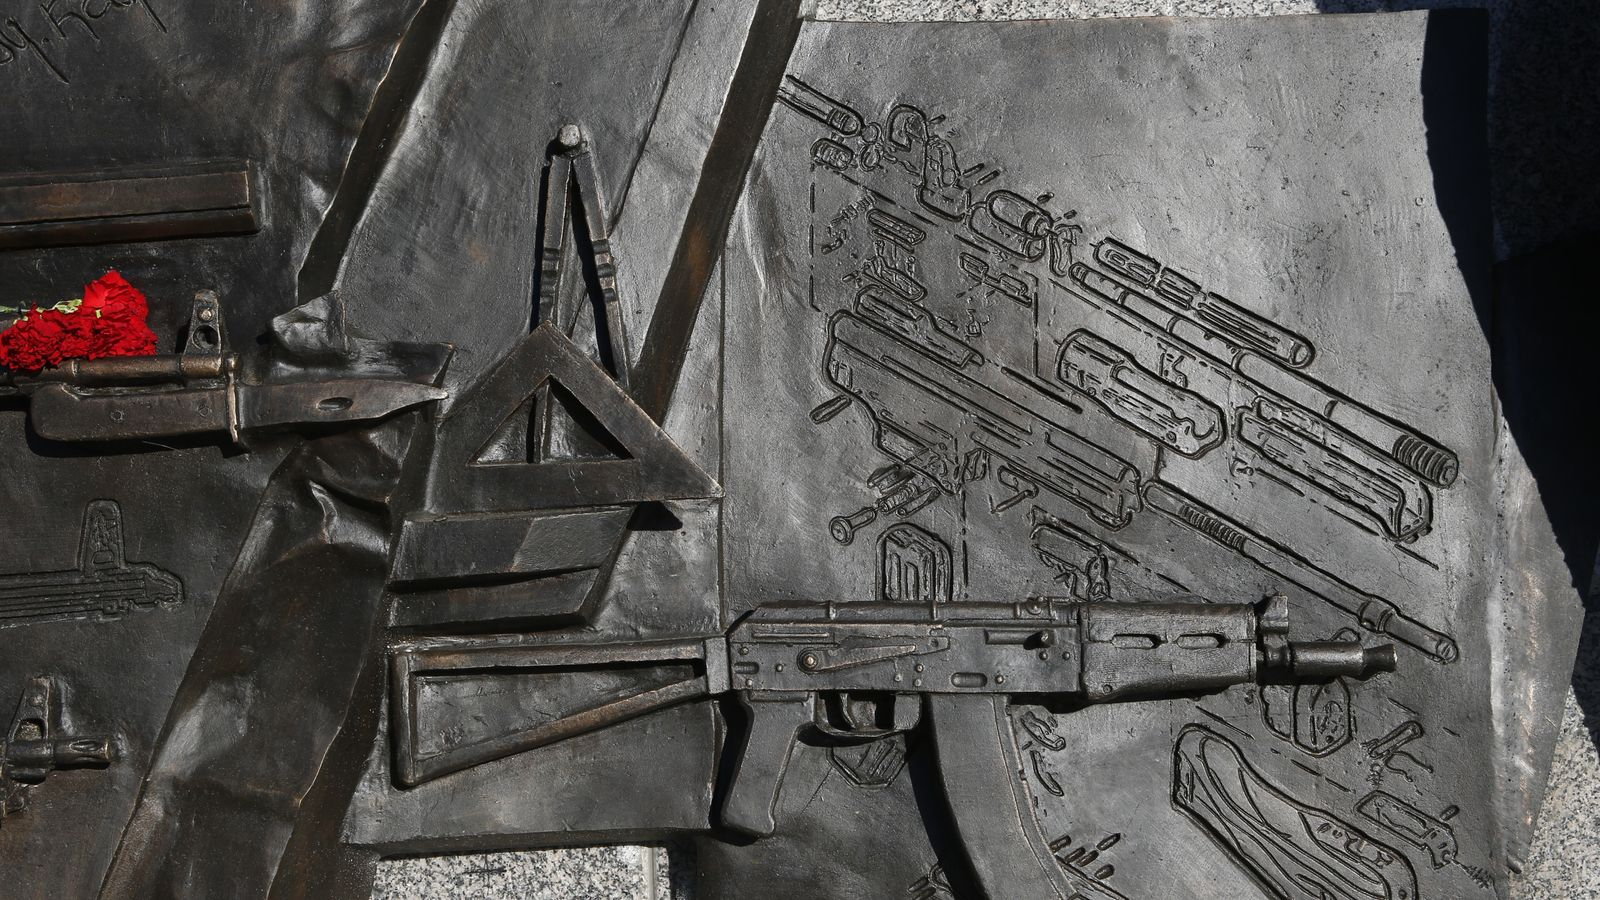 Nazi gun uncovered on new statue for Russian AK-47 inventor Mikhail Kalashnikov